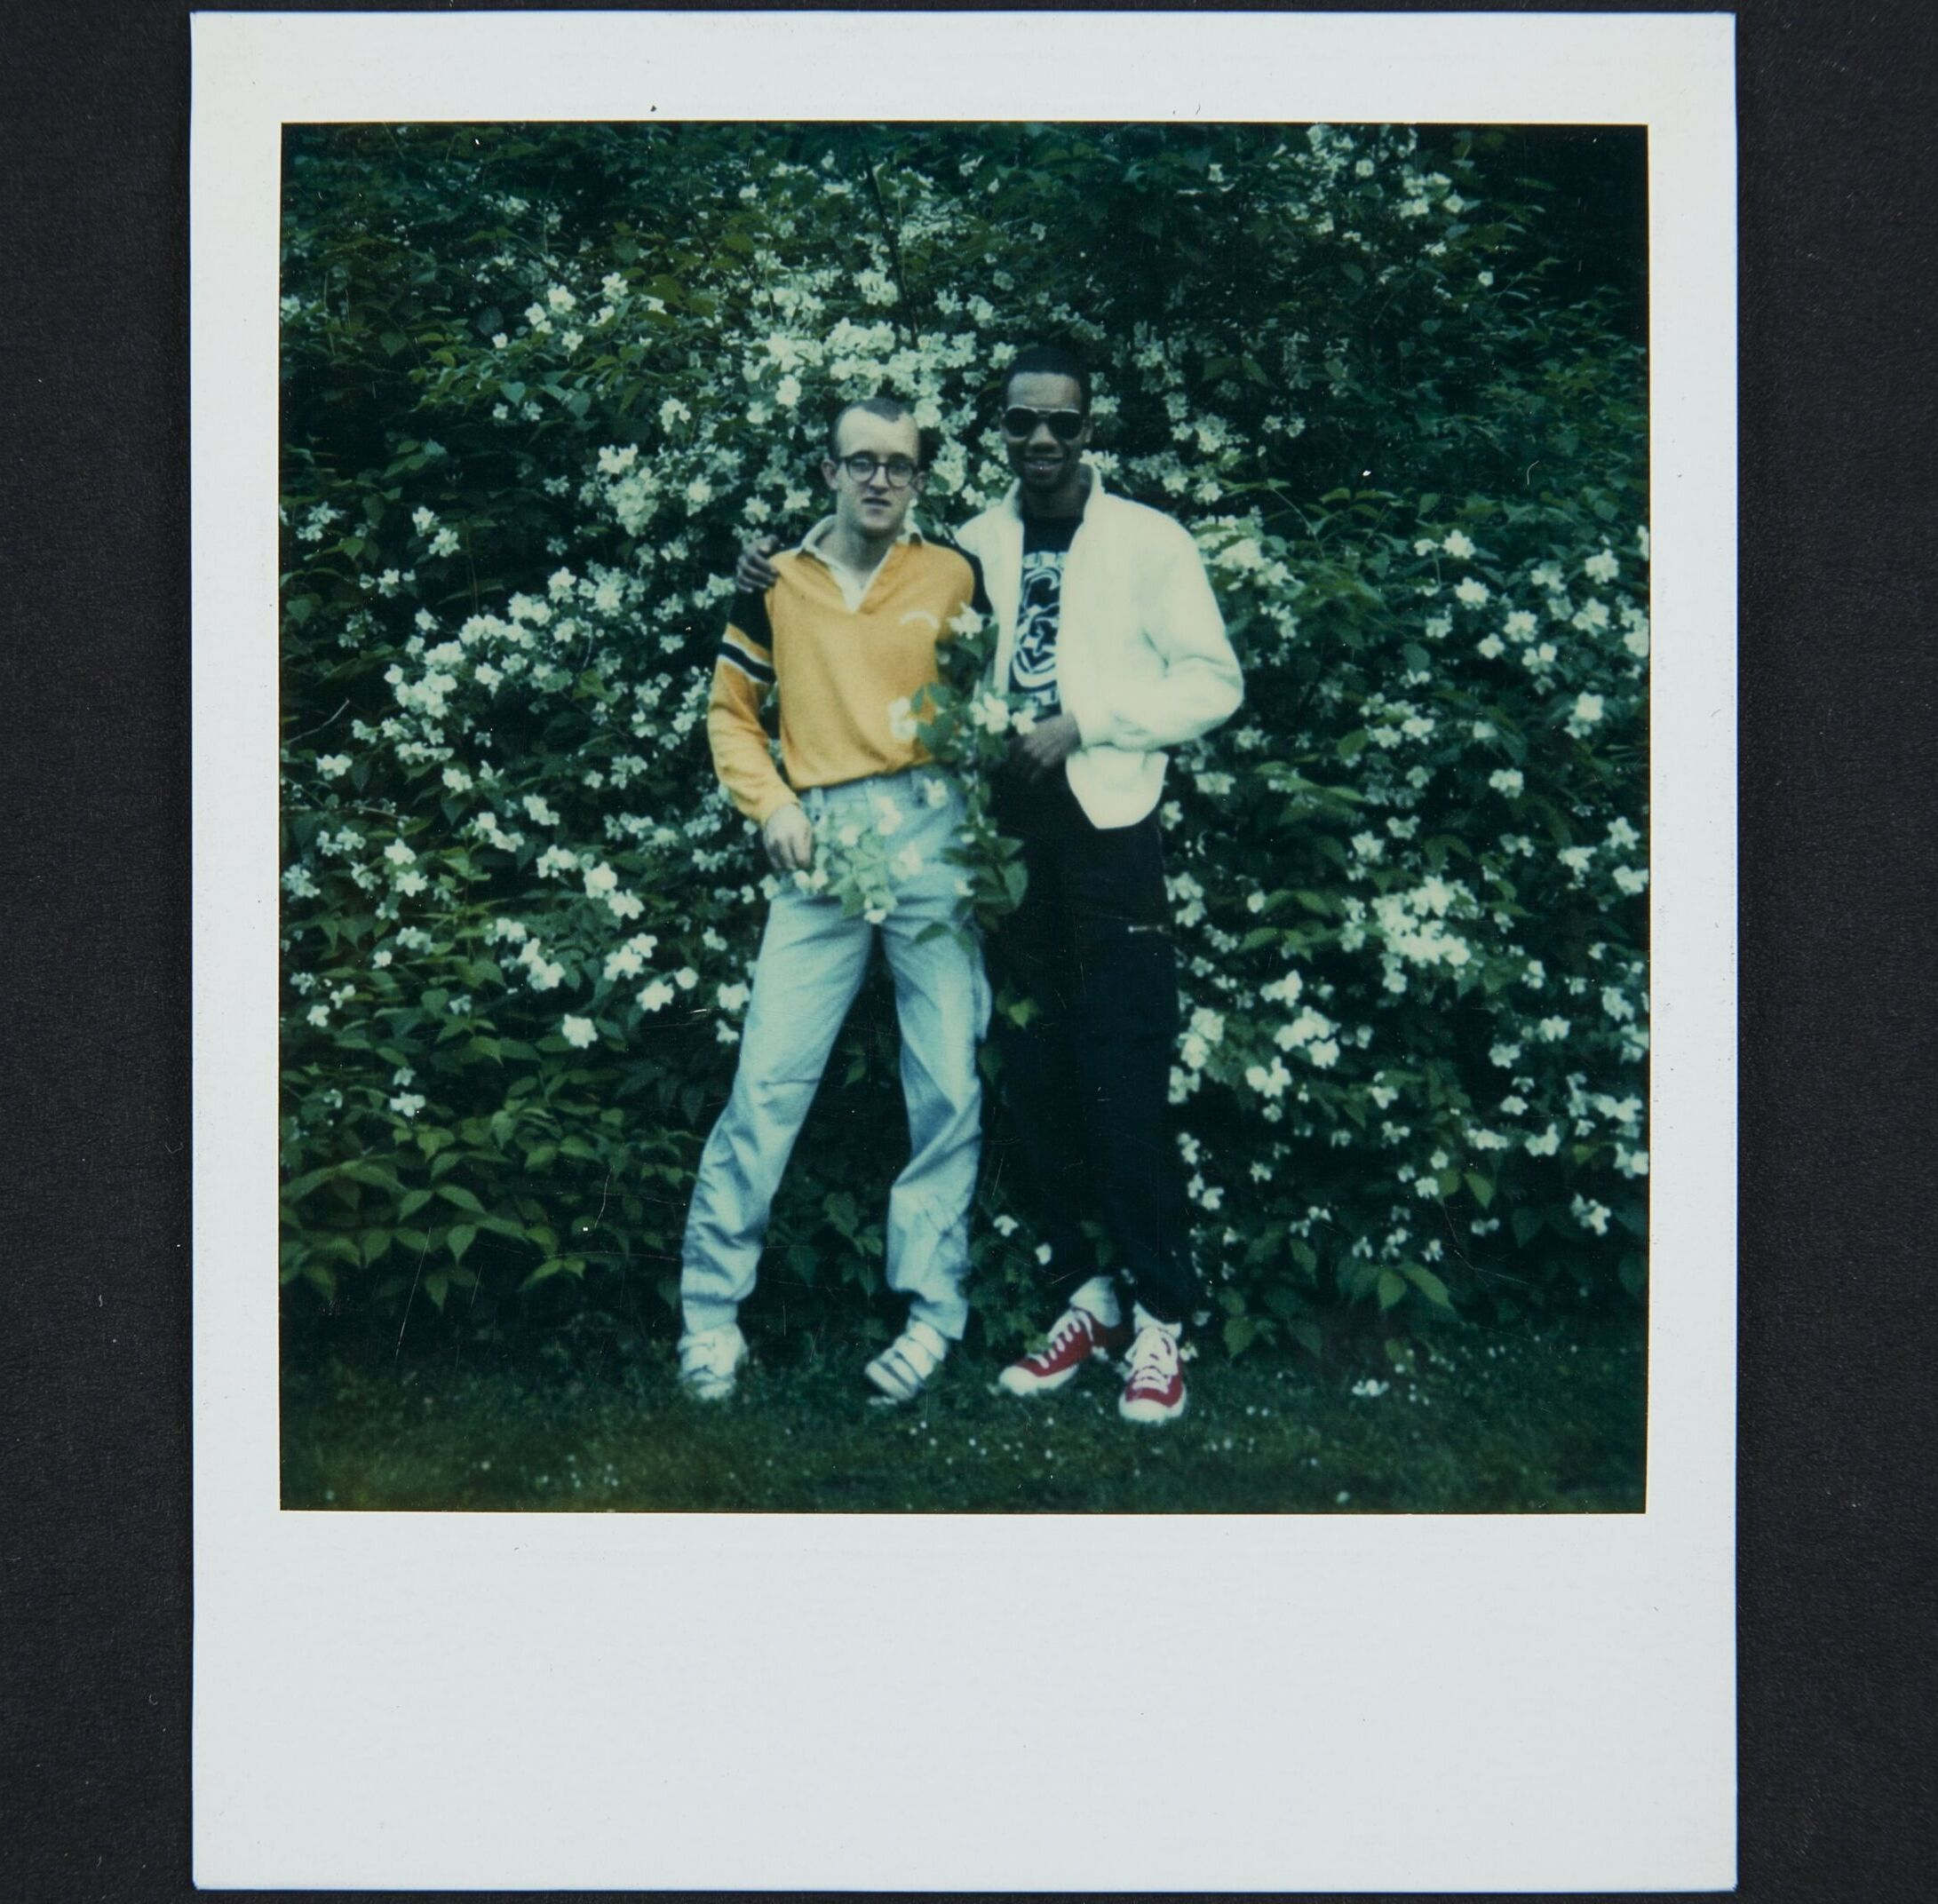 A white man in jeans and orange polo and glasses and Black man in black pants, black and white t-shirt and white jacket and sunglasses stand close together and backed into a very large bush flowering with white flowers.